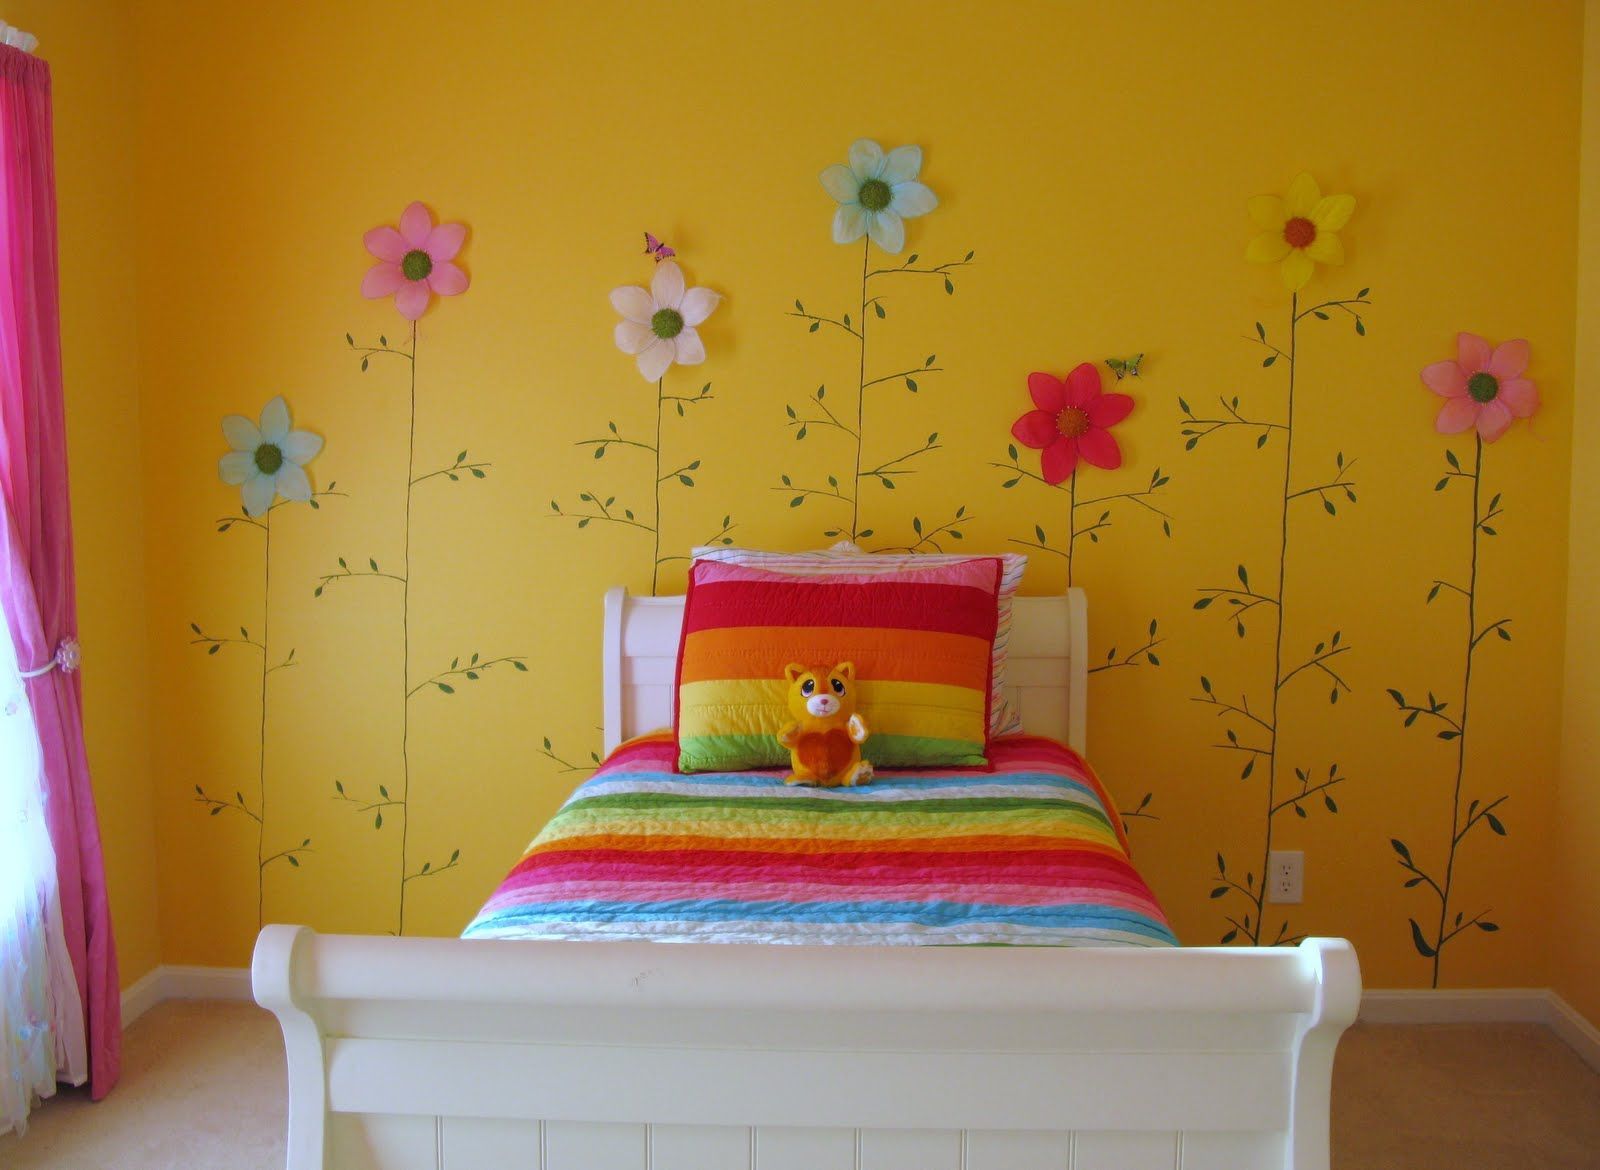 5 Stylish Bedroom Designs For Your Comfort Bedroom Is The Last